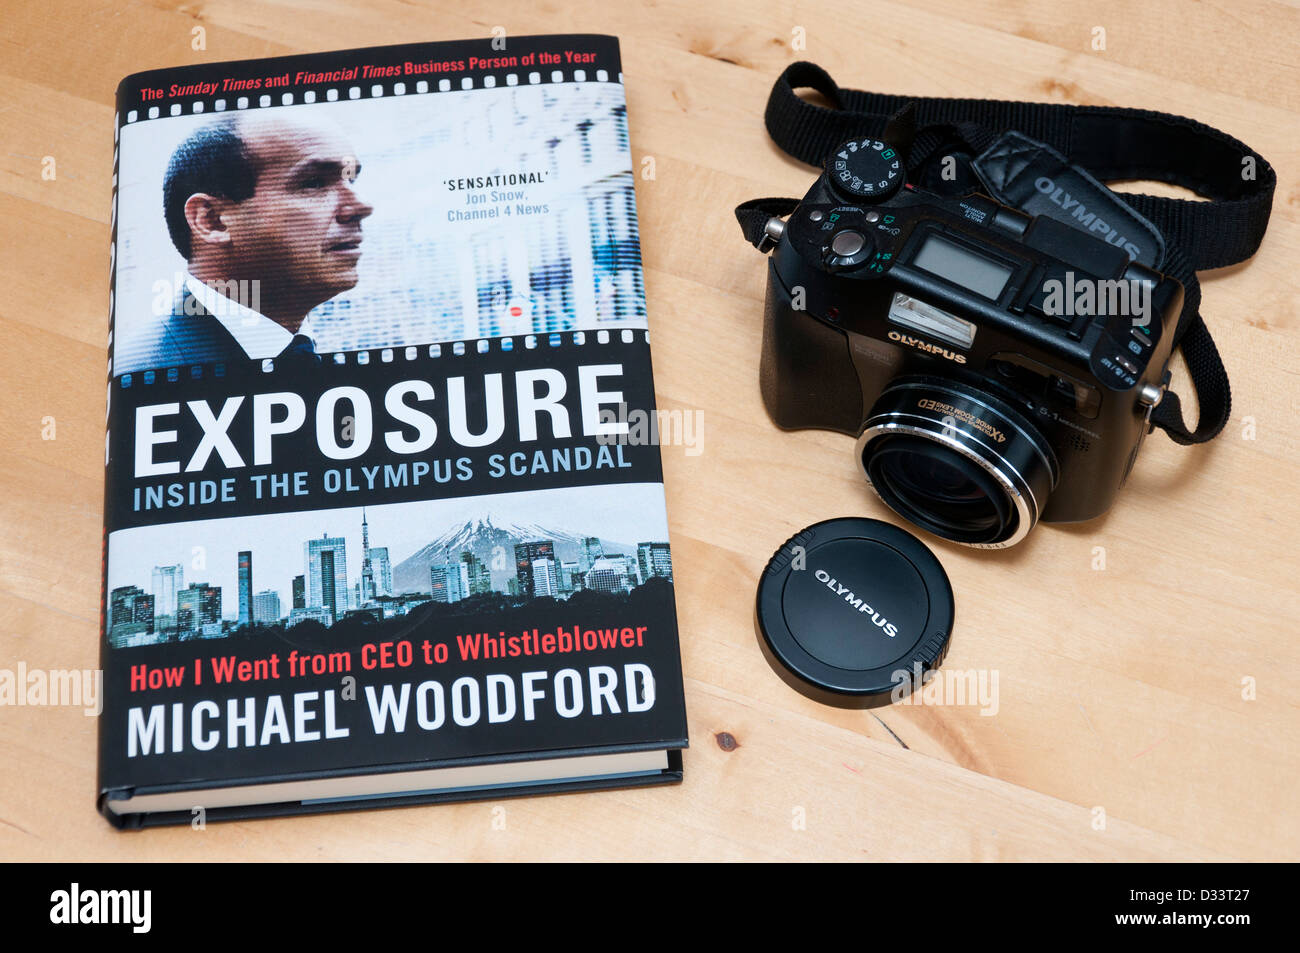 Exposure. Michael Woodford's book on the Olympus accounting scandal. - Stock Image